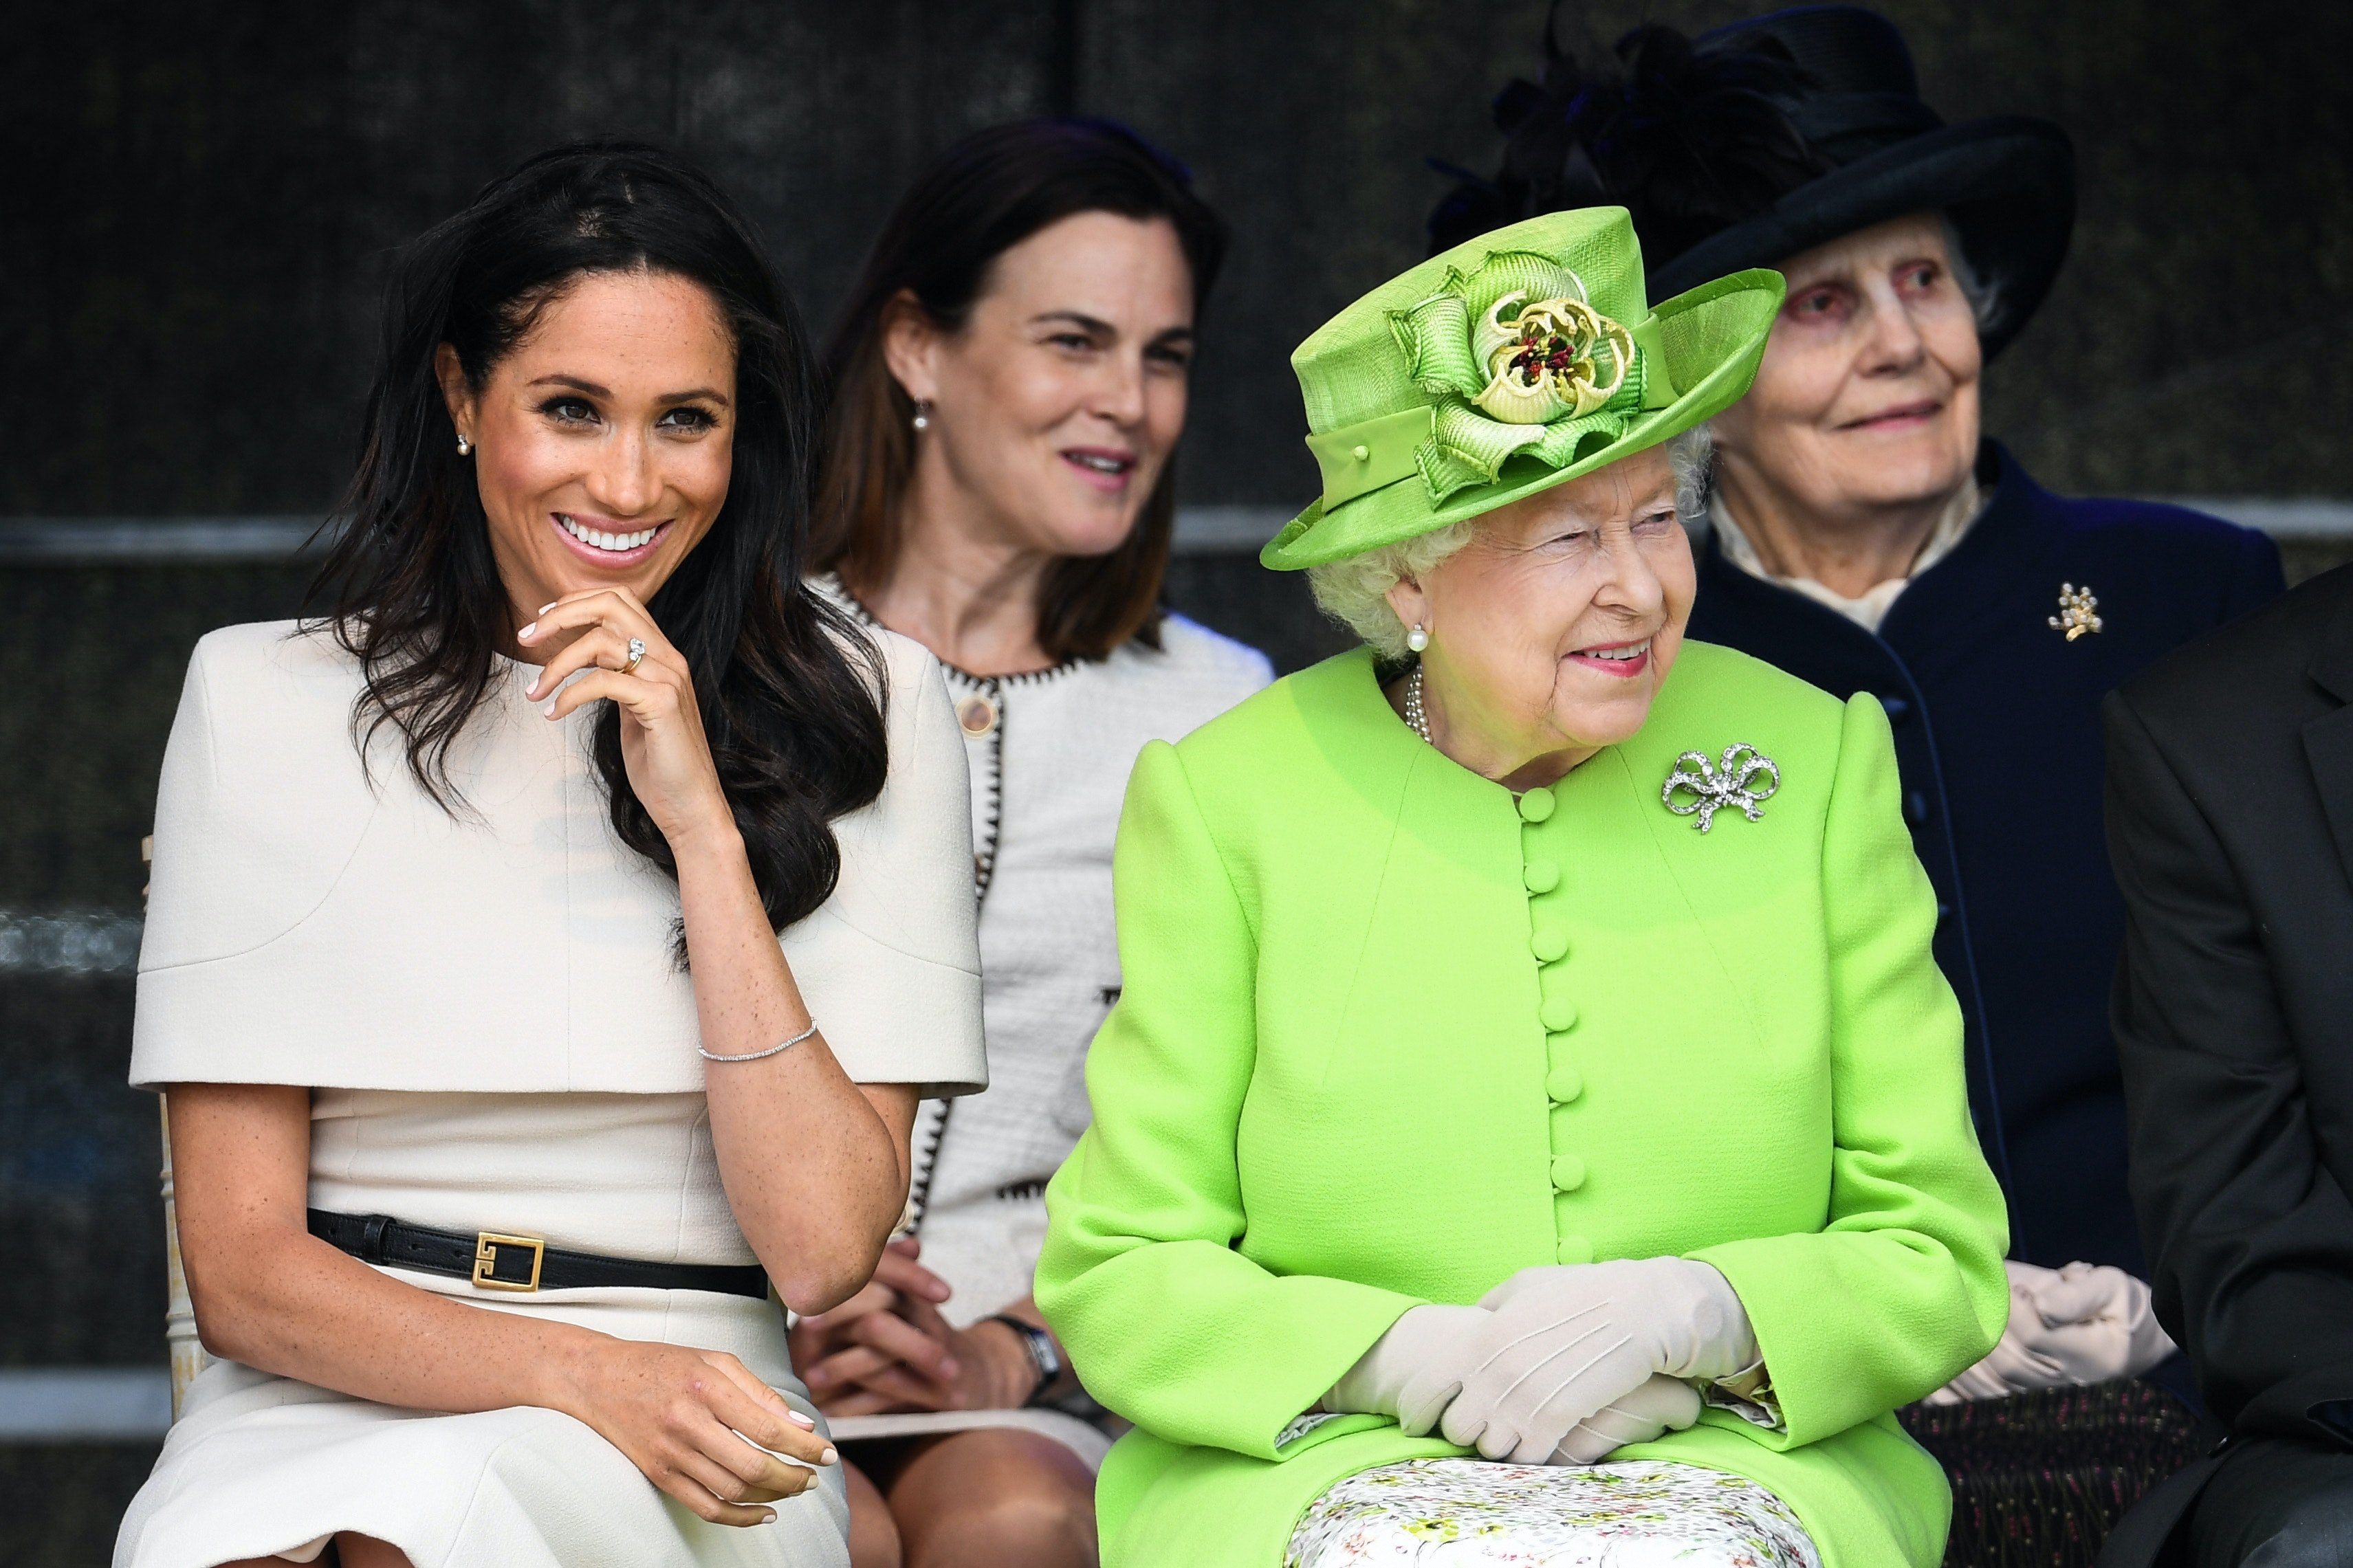 queen elizabeth basically rewore her royal wedding outfit in